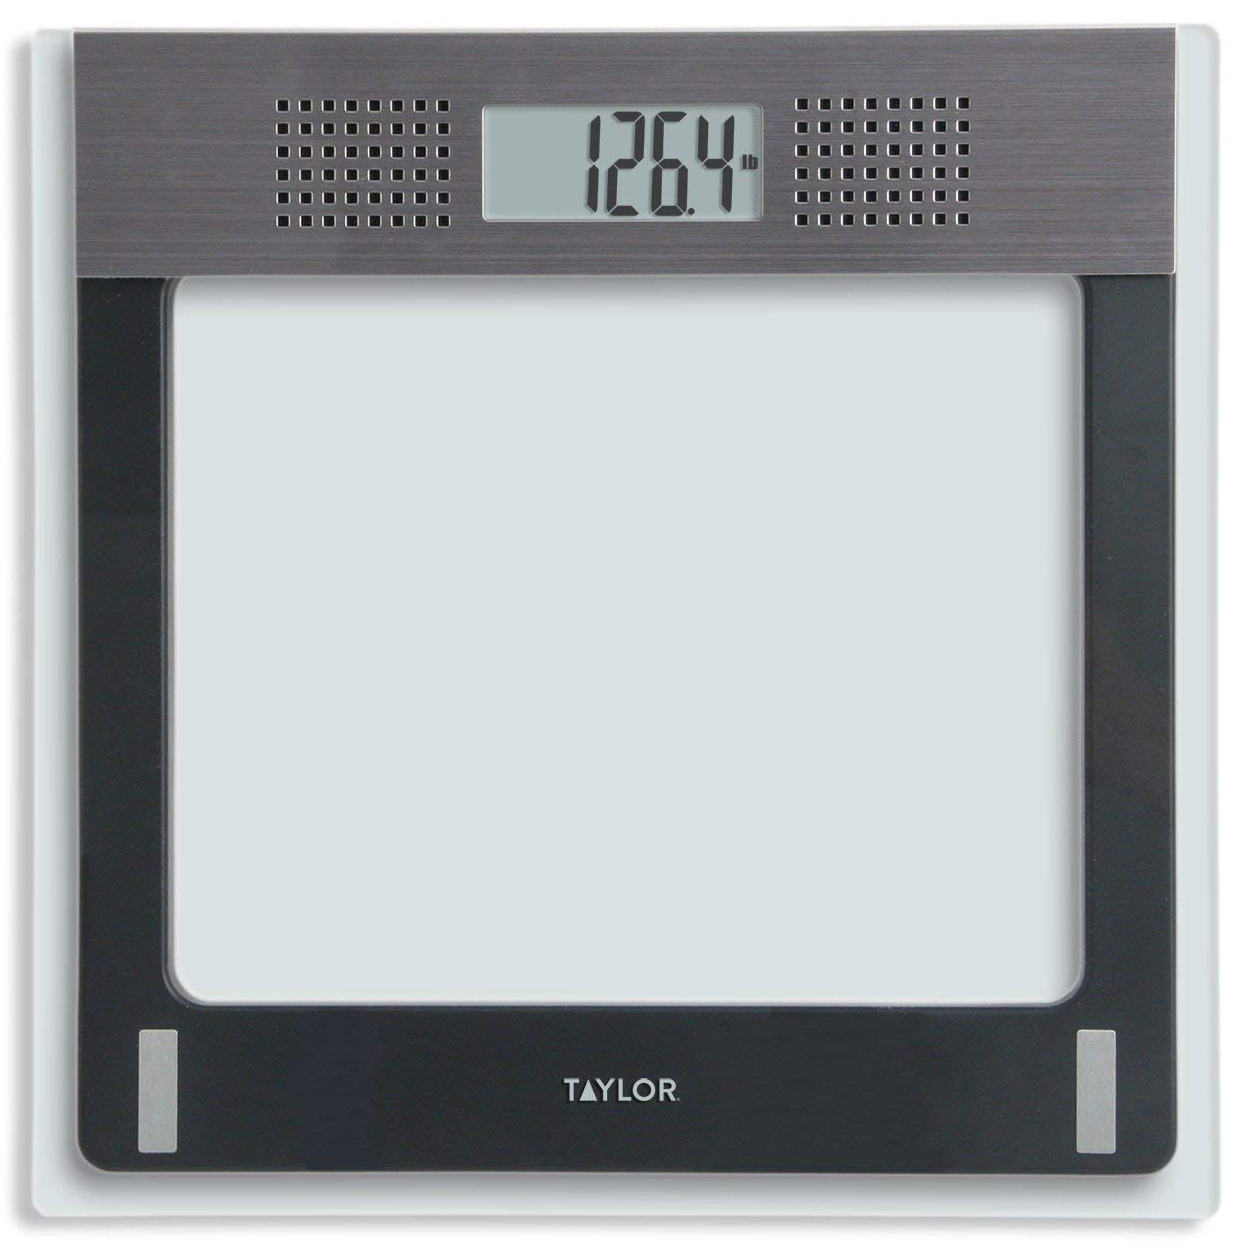 Taylor 7084 Electronic Glass Talking Scale